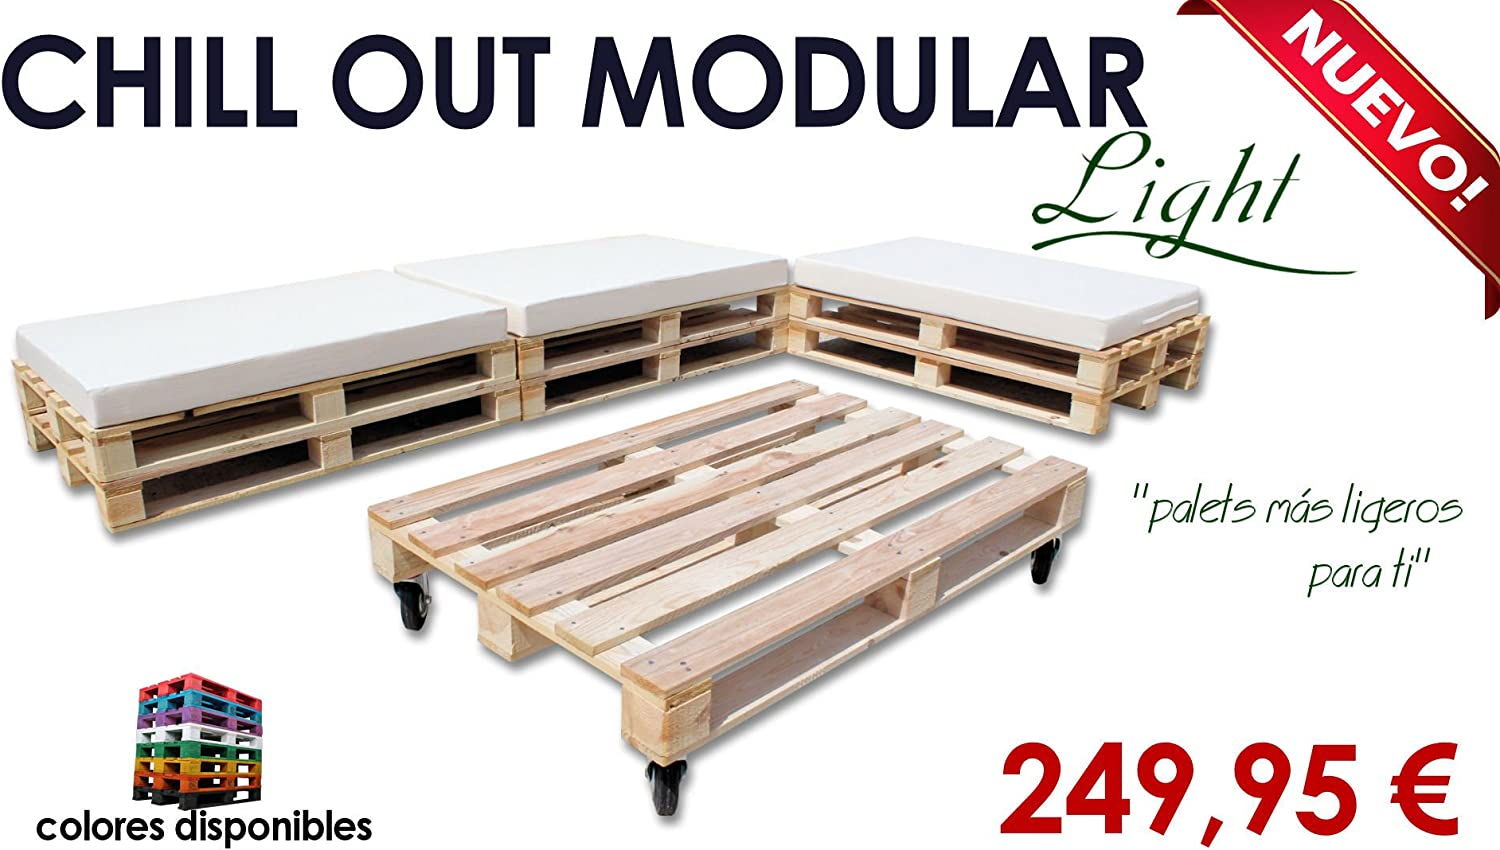 Chill out Light modular palets para jardín y terraza (Palet madera natural): Amazon.es: Hogar